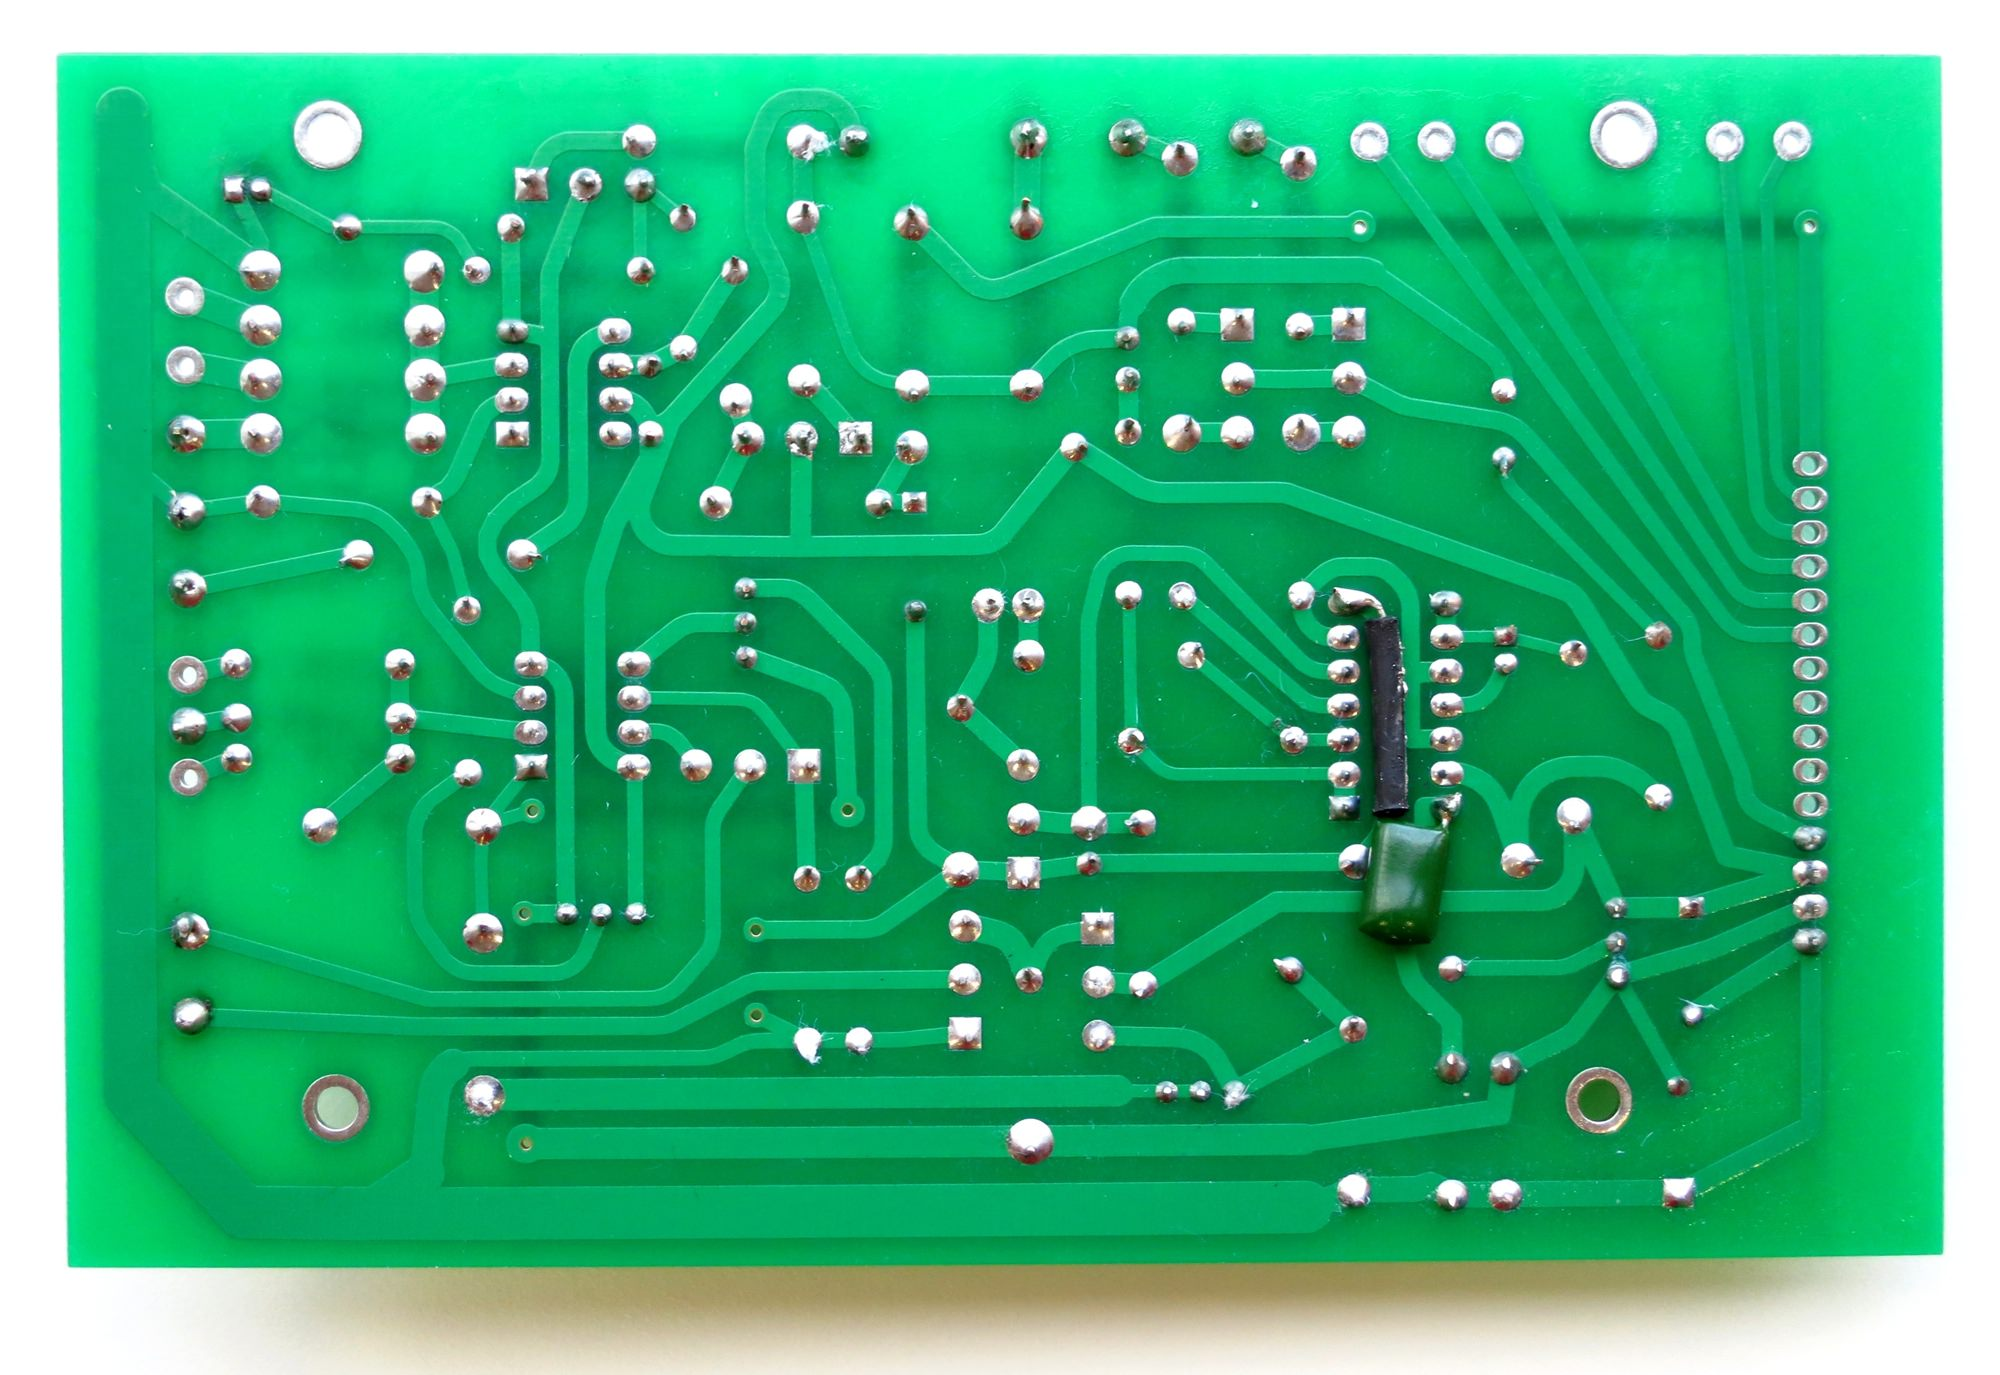 Electronics Irc Archive For 2016 08 04 Topic Ssr Solid State Relay And Arduino Uno Read 2938 Times